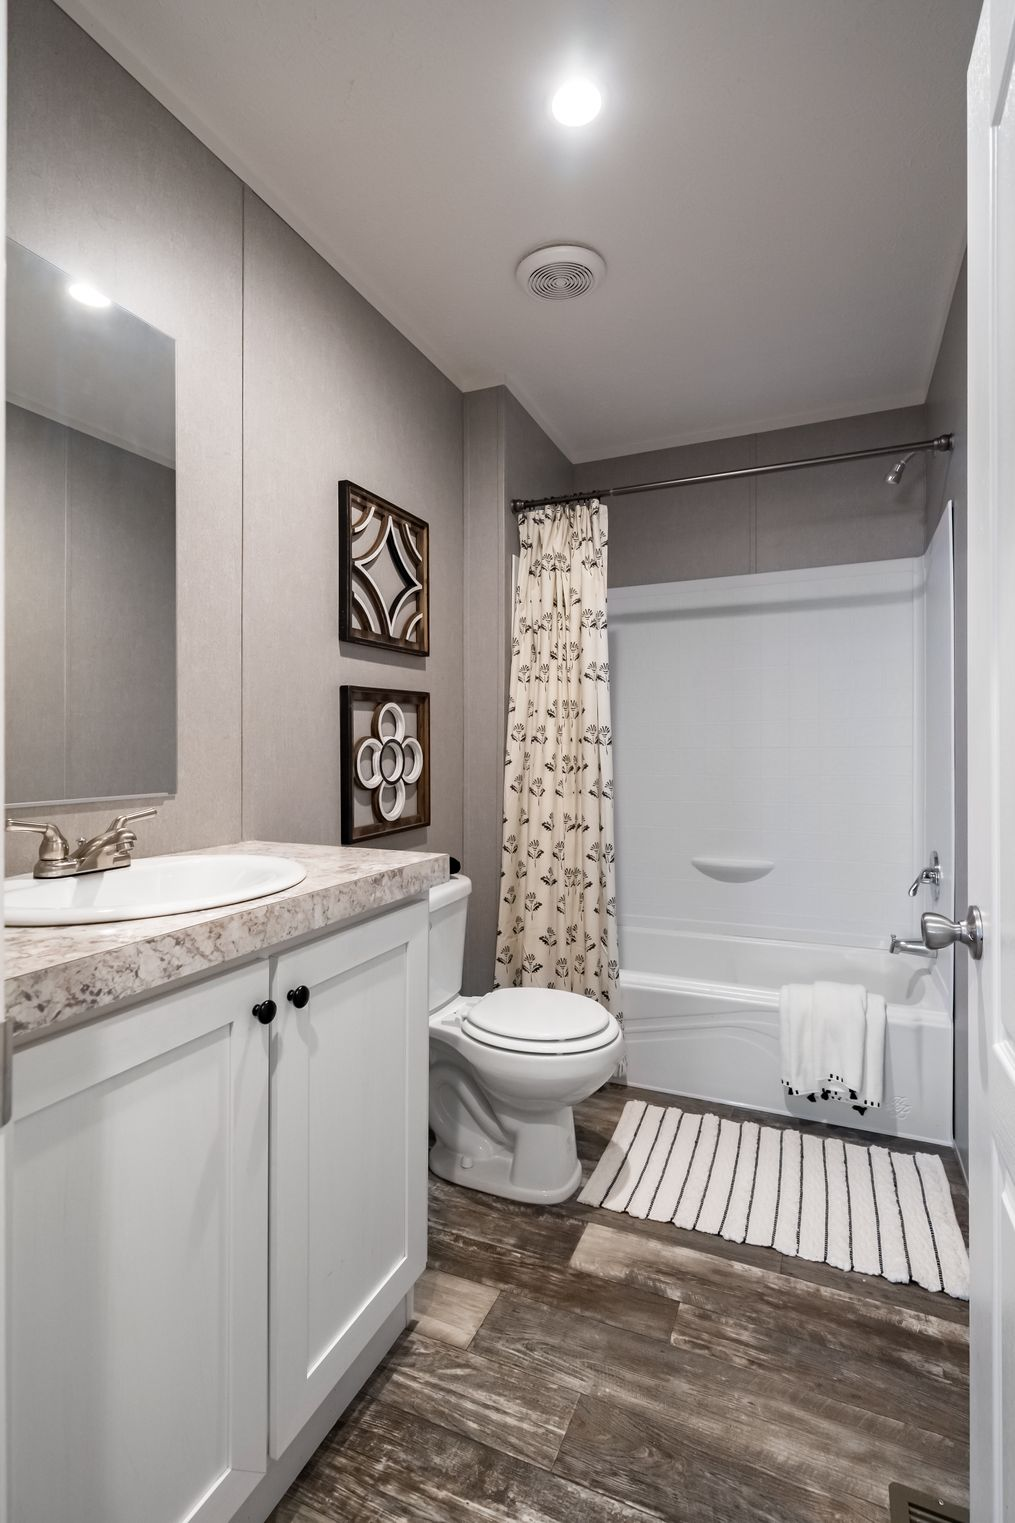 The TRADITION 48 Guest Bathroom. This Manufactured Mobile Home features 3 bedrooms and 2 baths.